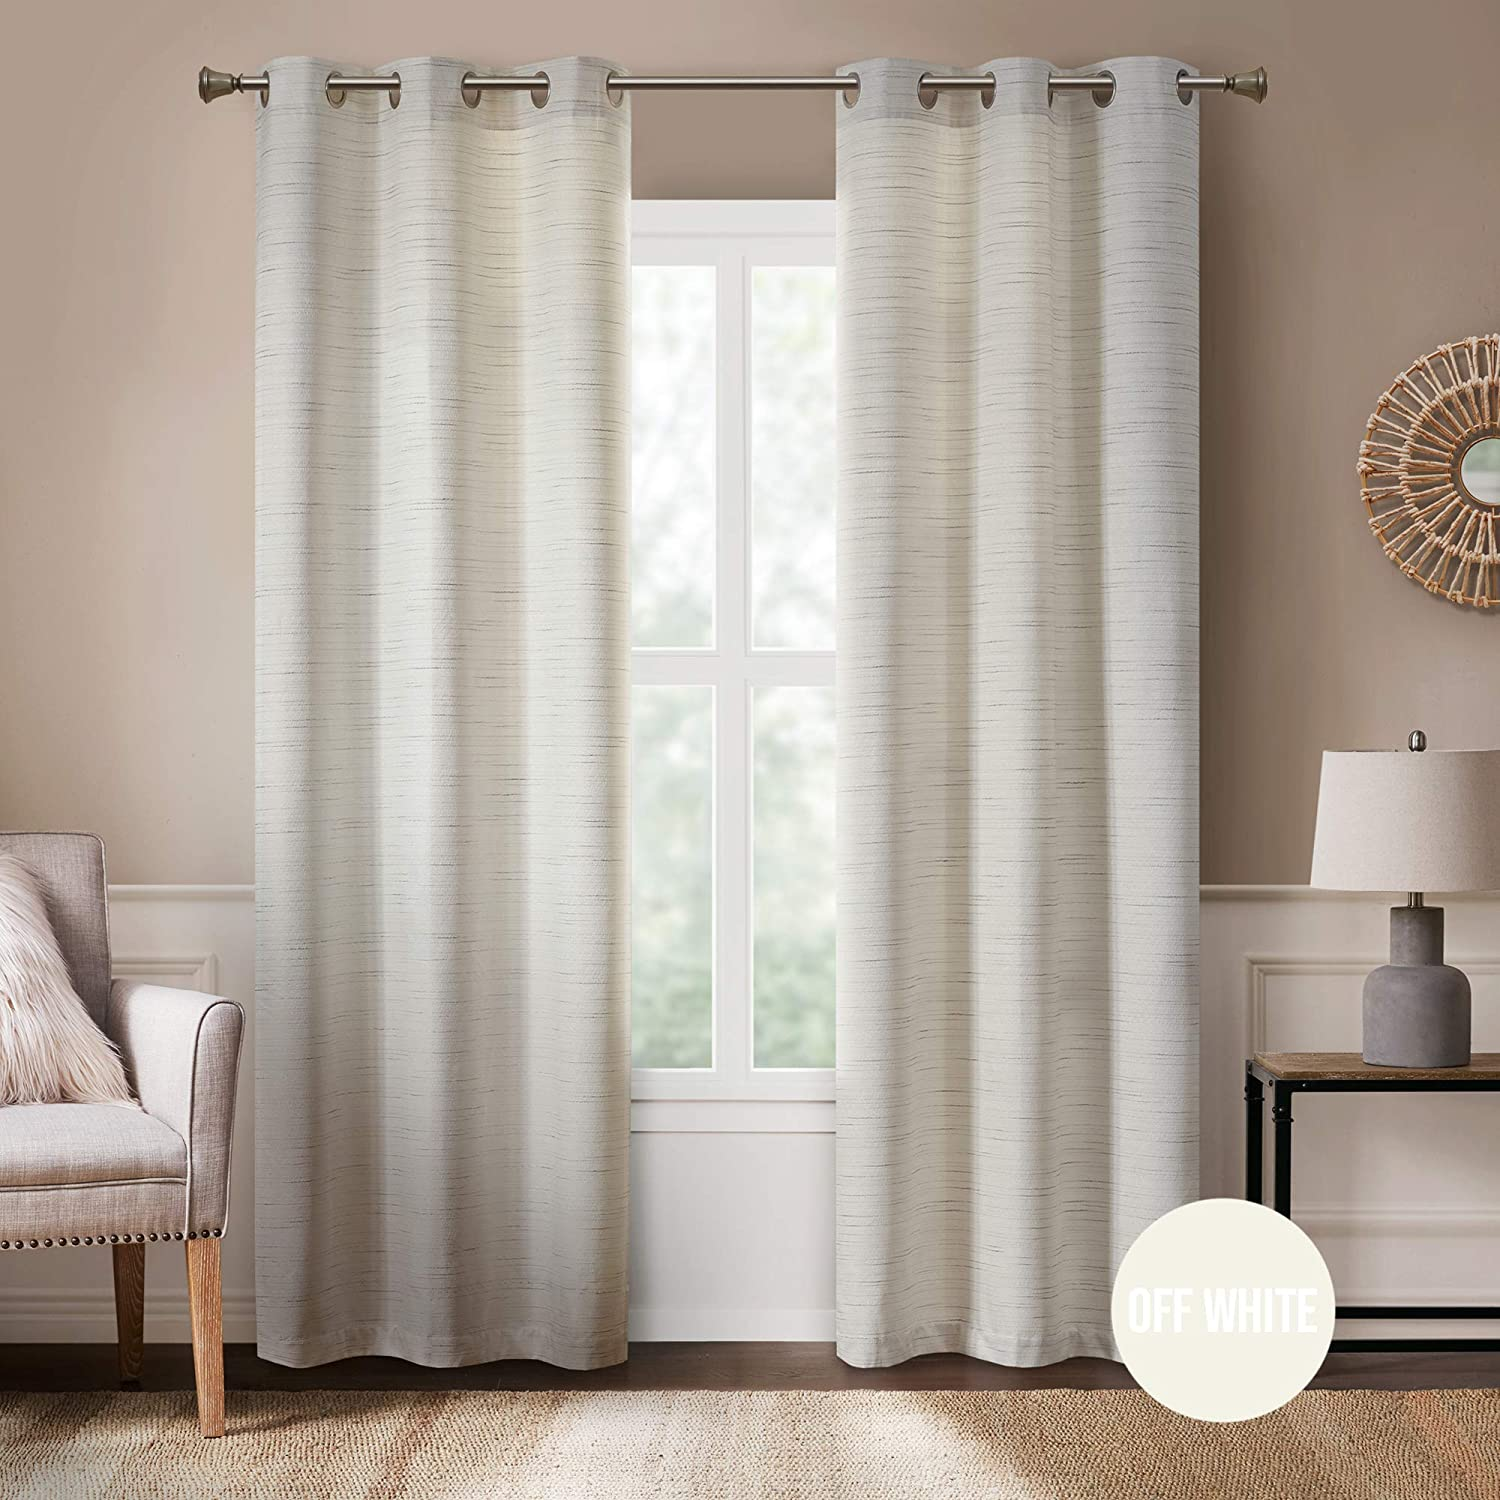 Rustic Modern Curtains for Living Room   Farmhouse Bedroom Window Treatment   Grasscloth Faux Linen   Room Darkening Grommet Top Decor   Off/White 40x84 Inches - 2 Panels